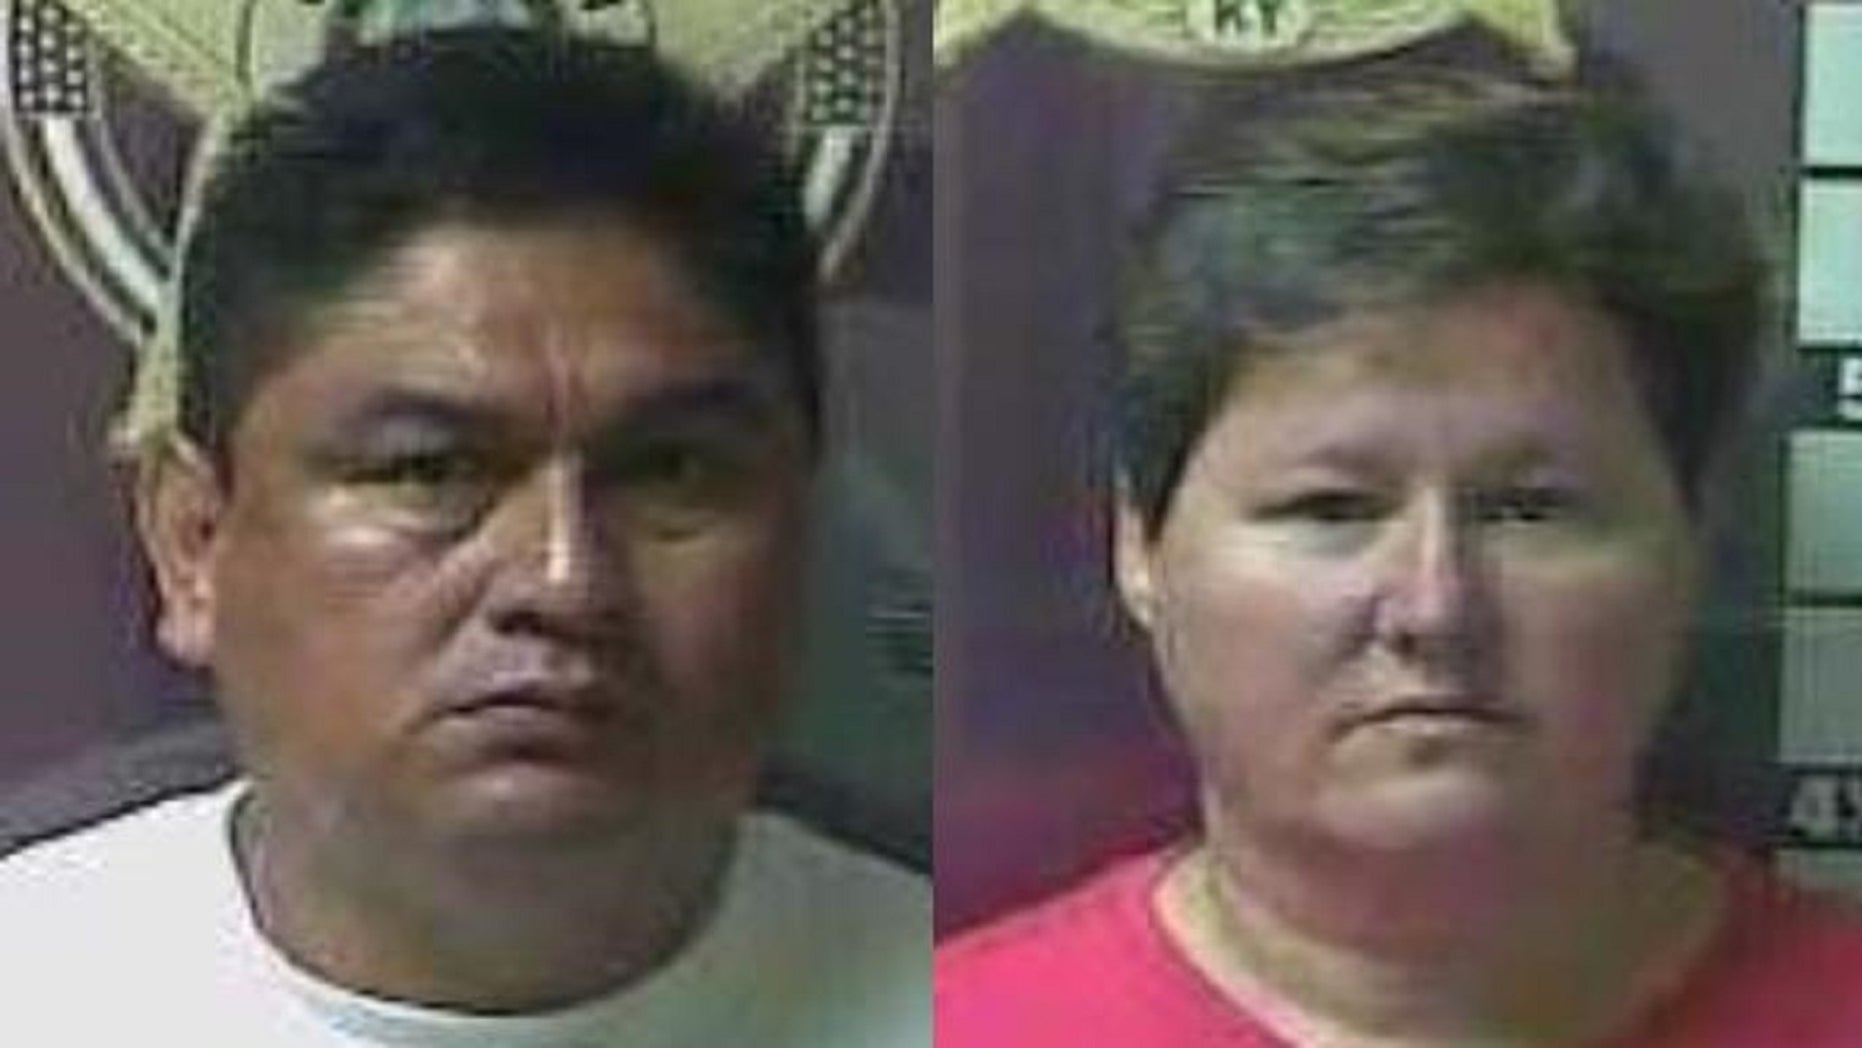 Tito Felix and his wife, Shannon, were arrested last week after authorities said they found their18-year-old daughter locked in a large wooden cage that reeked of feces and urine.